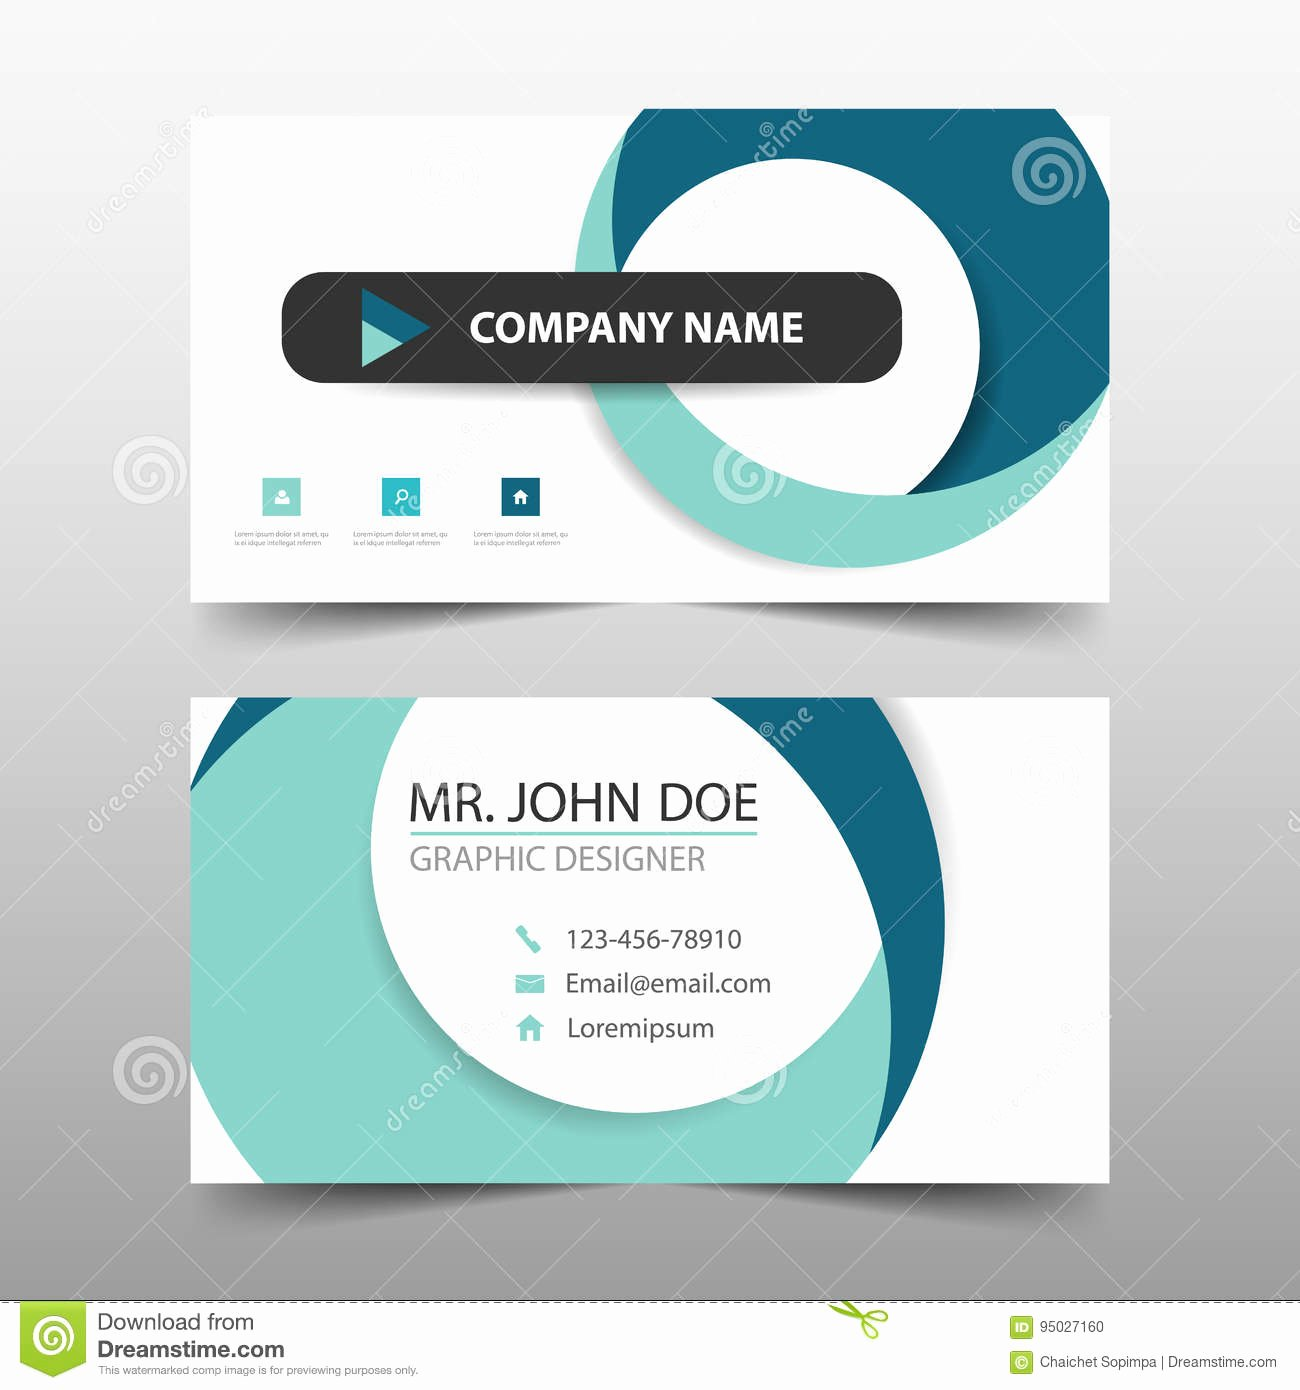 stock illustration blue circle corporate business card name card template horizontal simple clean layout design template business banner template image